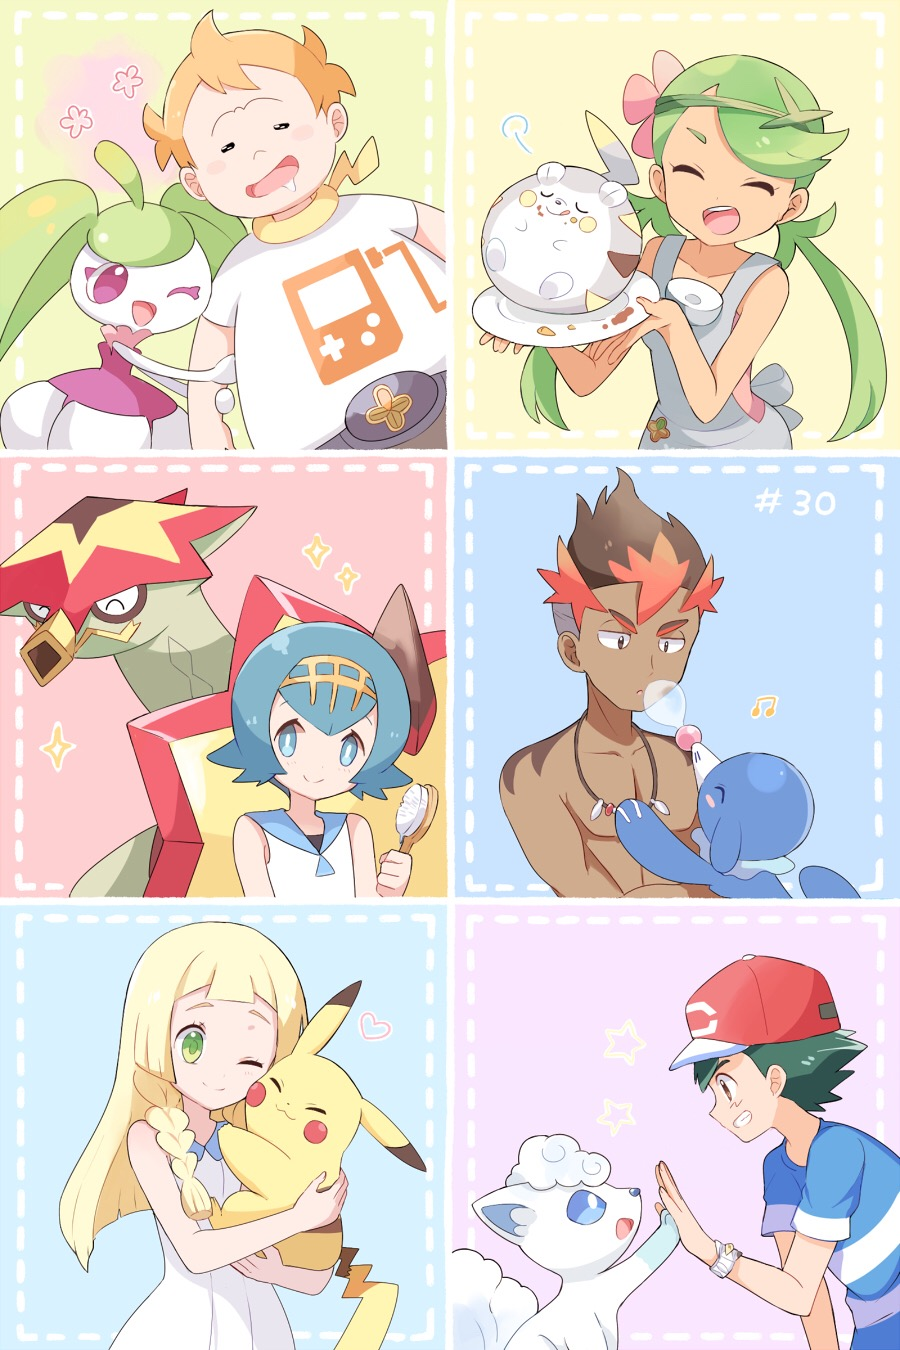 3boys 3girls :3 =3 ahoge alolan_vulpix arm_hug arm_up bangs bare_shoulders baseball_cap black_hair blonde_hair blue_eyes blue_hair blue_sailor_collar blue_sclera blue_shirt blush blush_stickers braid breasts brown_eyes brown_hair bubble cheek-to-cheek chest closed_eyes closed_mouth collarbone crumbs dark_skin dark_skinned_male dress drooling episode_number flat_chest flower food food_on_face from_side game_boy gen_1_pokemon gen_7_pokemon green_hair green_hairband grin hair_brush hair_flower hair_ornament hairband half-closed_eyes hand_up handheld_game_console hands_up happy hat heart highres holding holding_pokemon hug jpeg_artifacts kaki_(pokemon) licking_lips lillie_(pokemon) long_hair looking_at_another looking_down lying mamane_(pokemon) mao_(pokemon) mei_(maysroom) multicolored_hair multiple_boys multiple_girls musical_note number on_back one_eye_closed open_mouth orange_hair overalls pikachu pink_flower pink_shirt plate pokemon pokemon_(anime) pokemon_(creature) pokemon_sm_(anime) popplio profile red_headwear redhead sailor_collar saliva satoshi_(pokemon) shiny shiny_hair shirt shirtless short_hair short_sleeves sideways_mouth sleeveless sleeveless_dress sleeveless_shirt small_breasts smile sparkle standing star steenee strapless_shirt striped striped_shirt suiren_(pokemon) swept_bangs teeth tied_hair togedemaru tongue tongue_out trial_captain turtonator twin_braids twintails two-tone_hair upper_body violet_eyes white_dress white_eyes white_shirt yellow_hairband